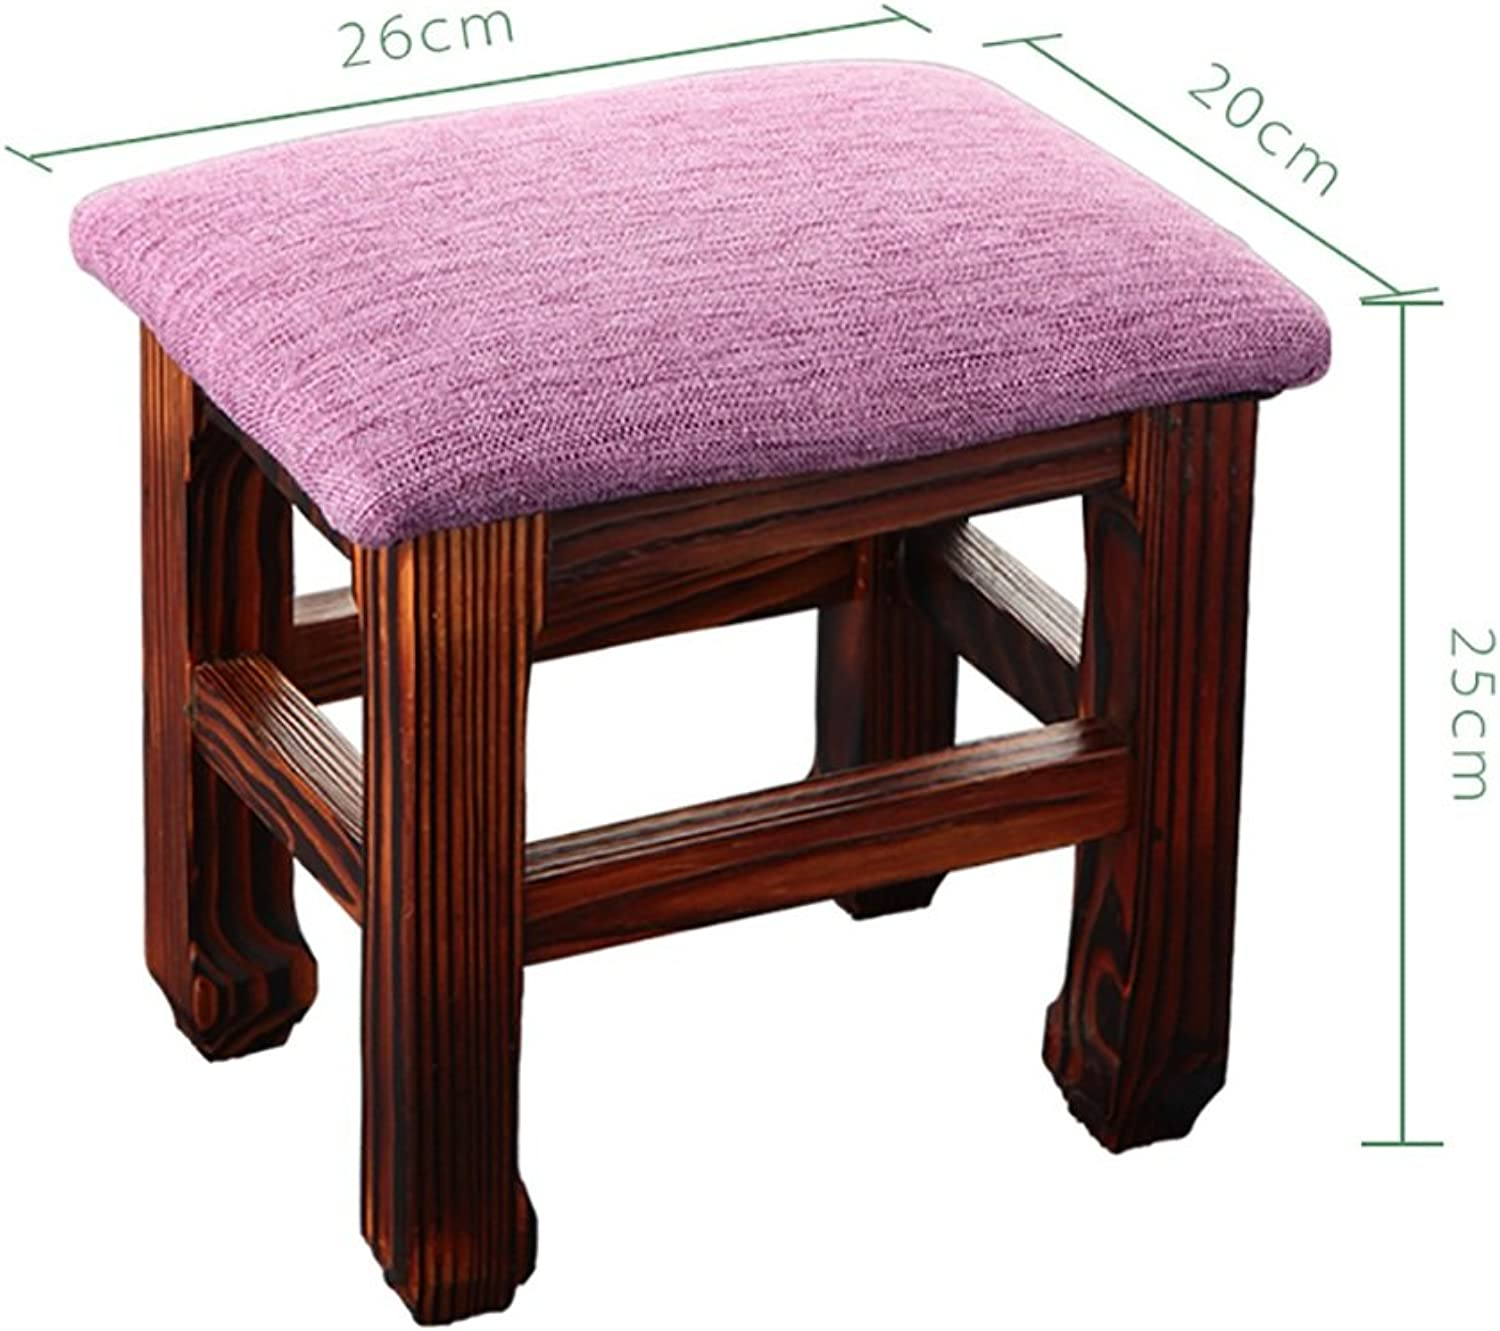 Solid Wood Stool Household shoes Bench Fashion Adult Stool Small Bench shoes Bench 26  20  25cm (color   C)